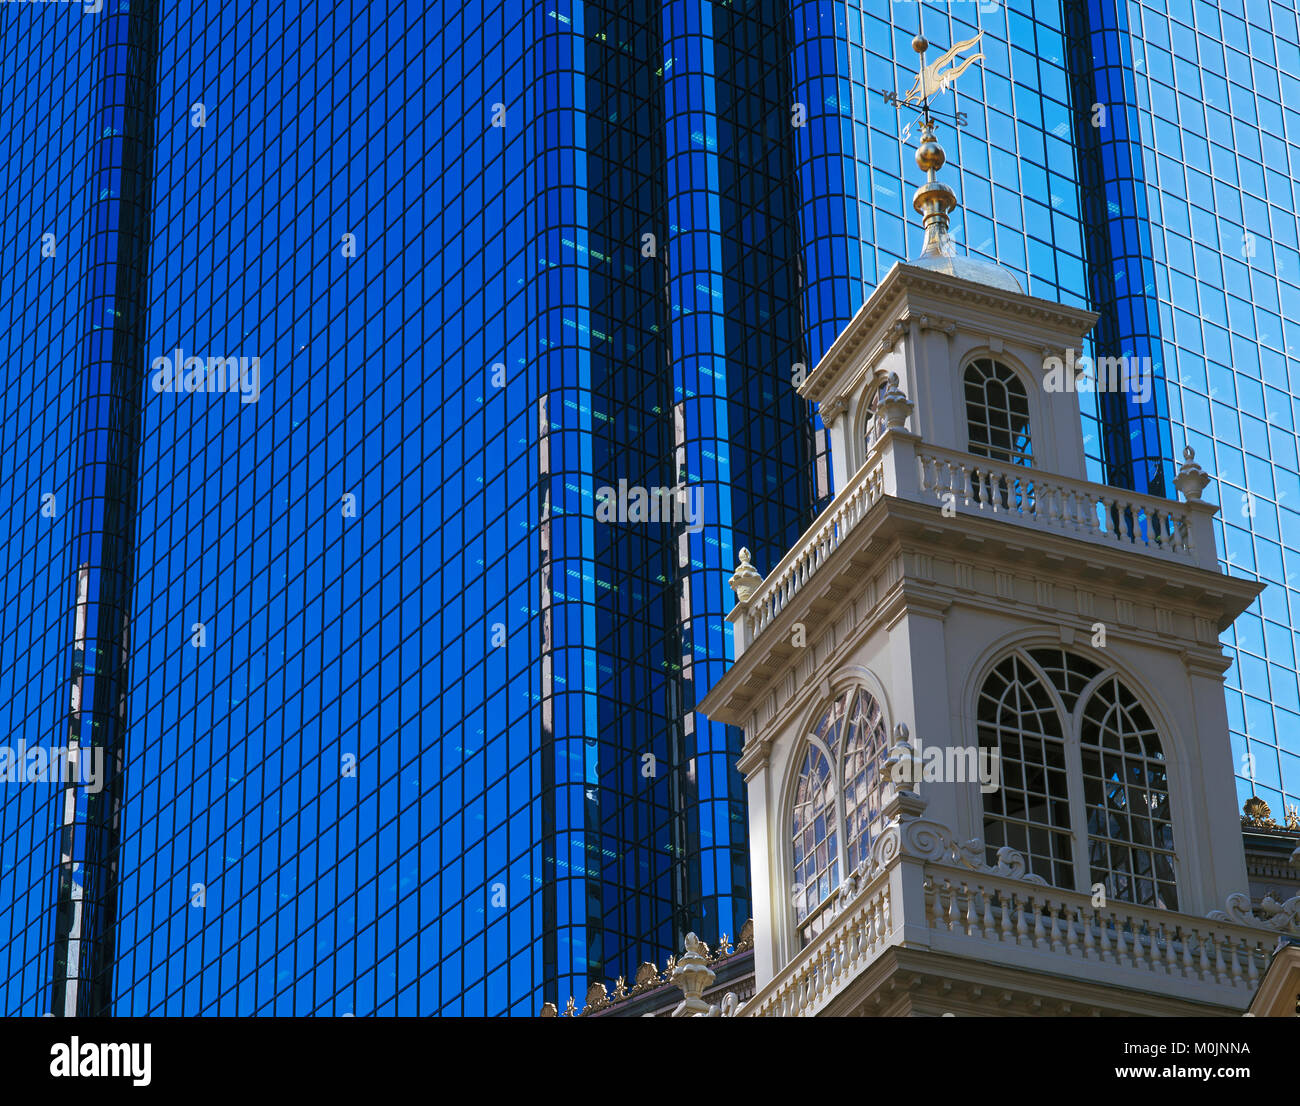 Trinity Church and the Hancock Tower, Boston, Massachusetts, USA - Stock Image